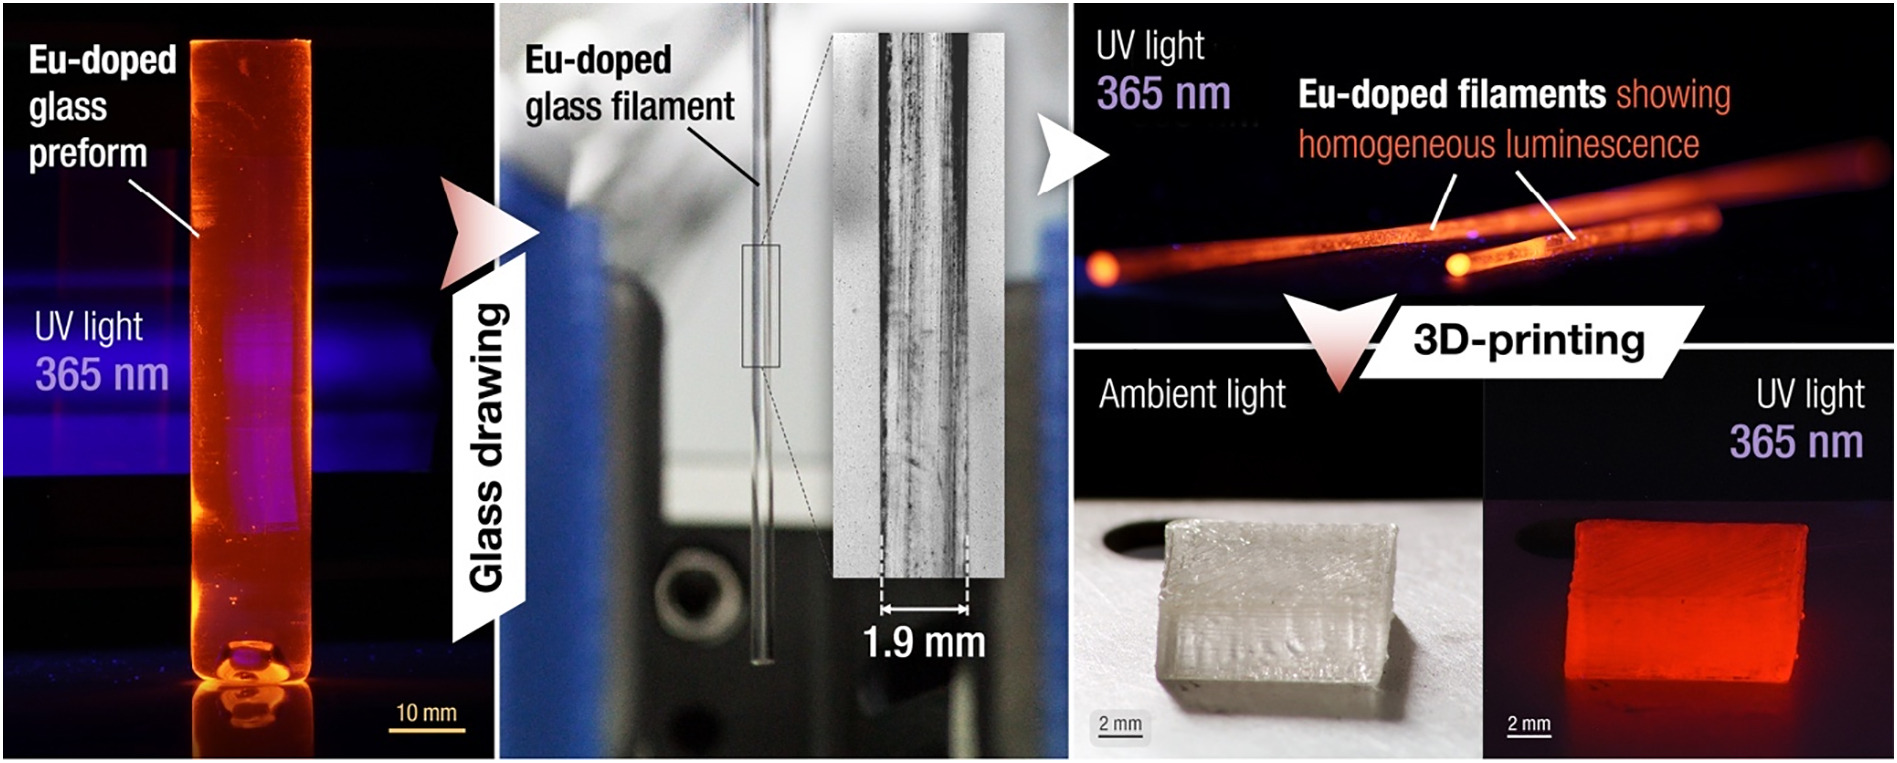 The filament and printed parts displayed homogenous light distribution throughout. Image via University of Bordeaux.